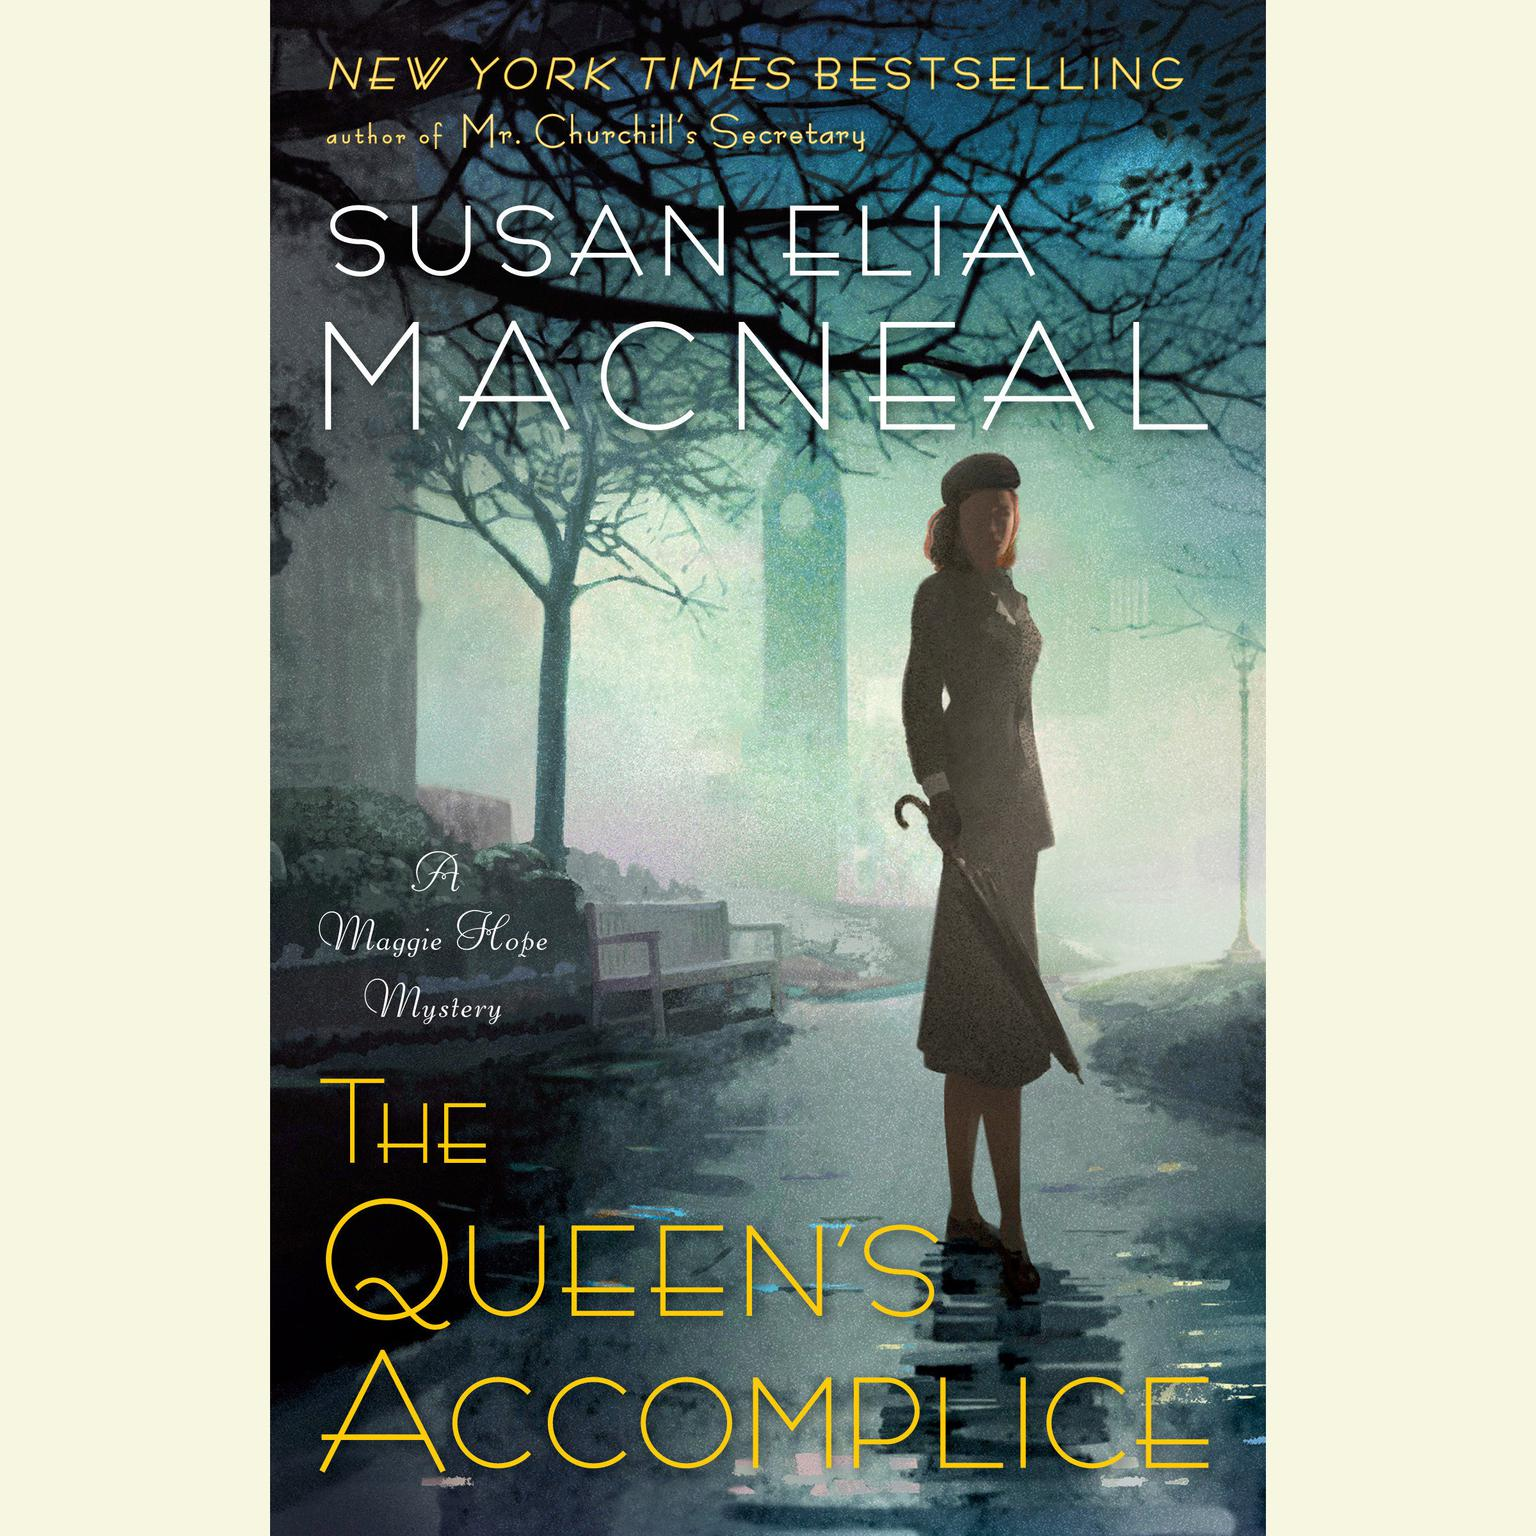 Printable The Queen's Accomplice Audiobook Cover Art